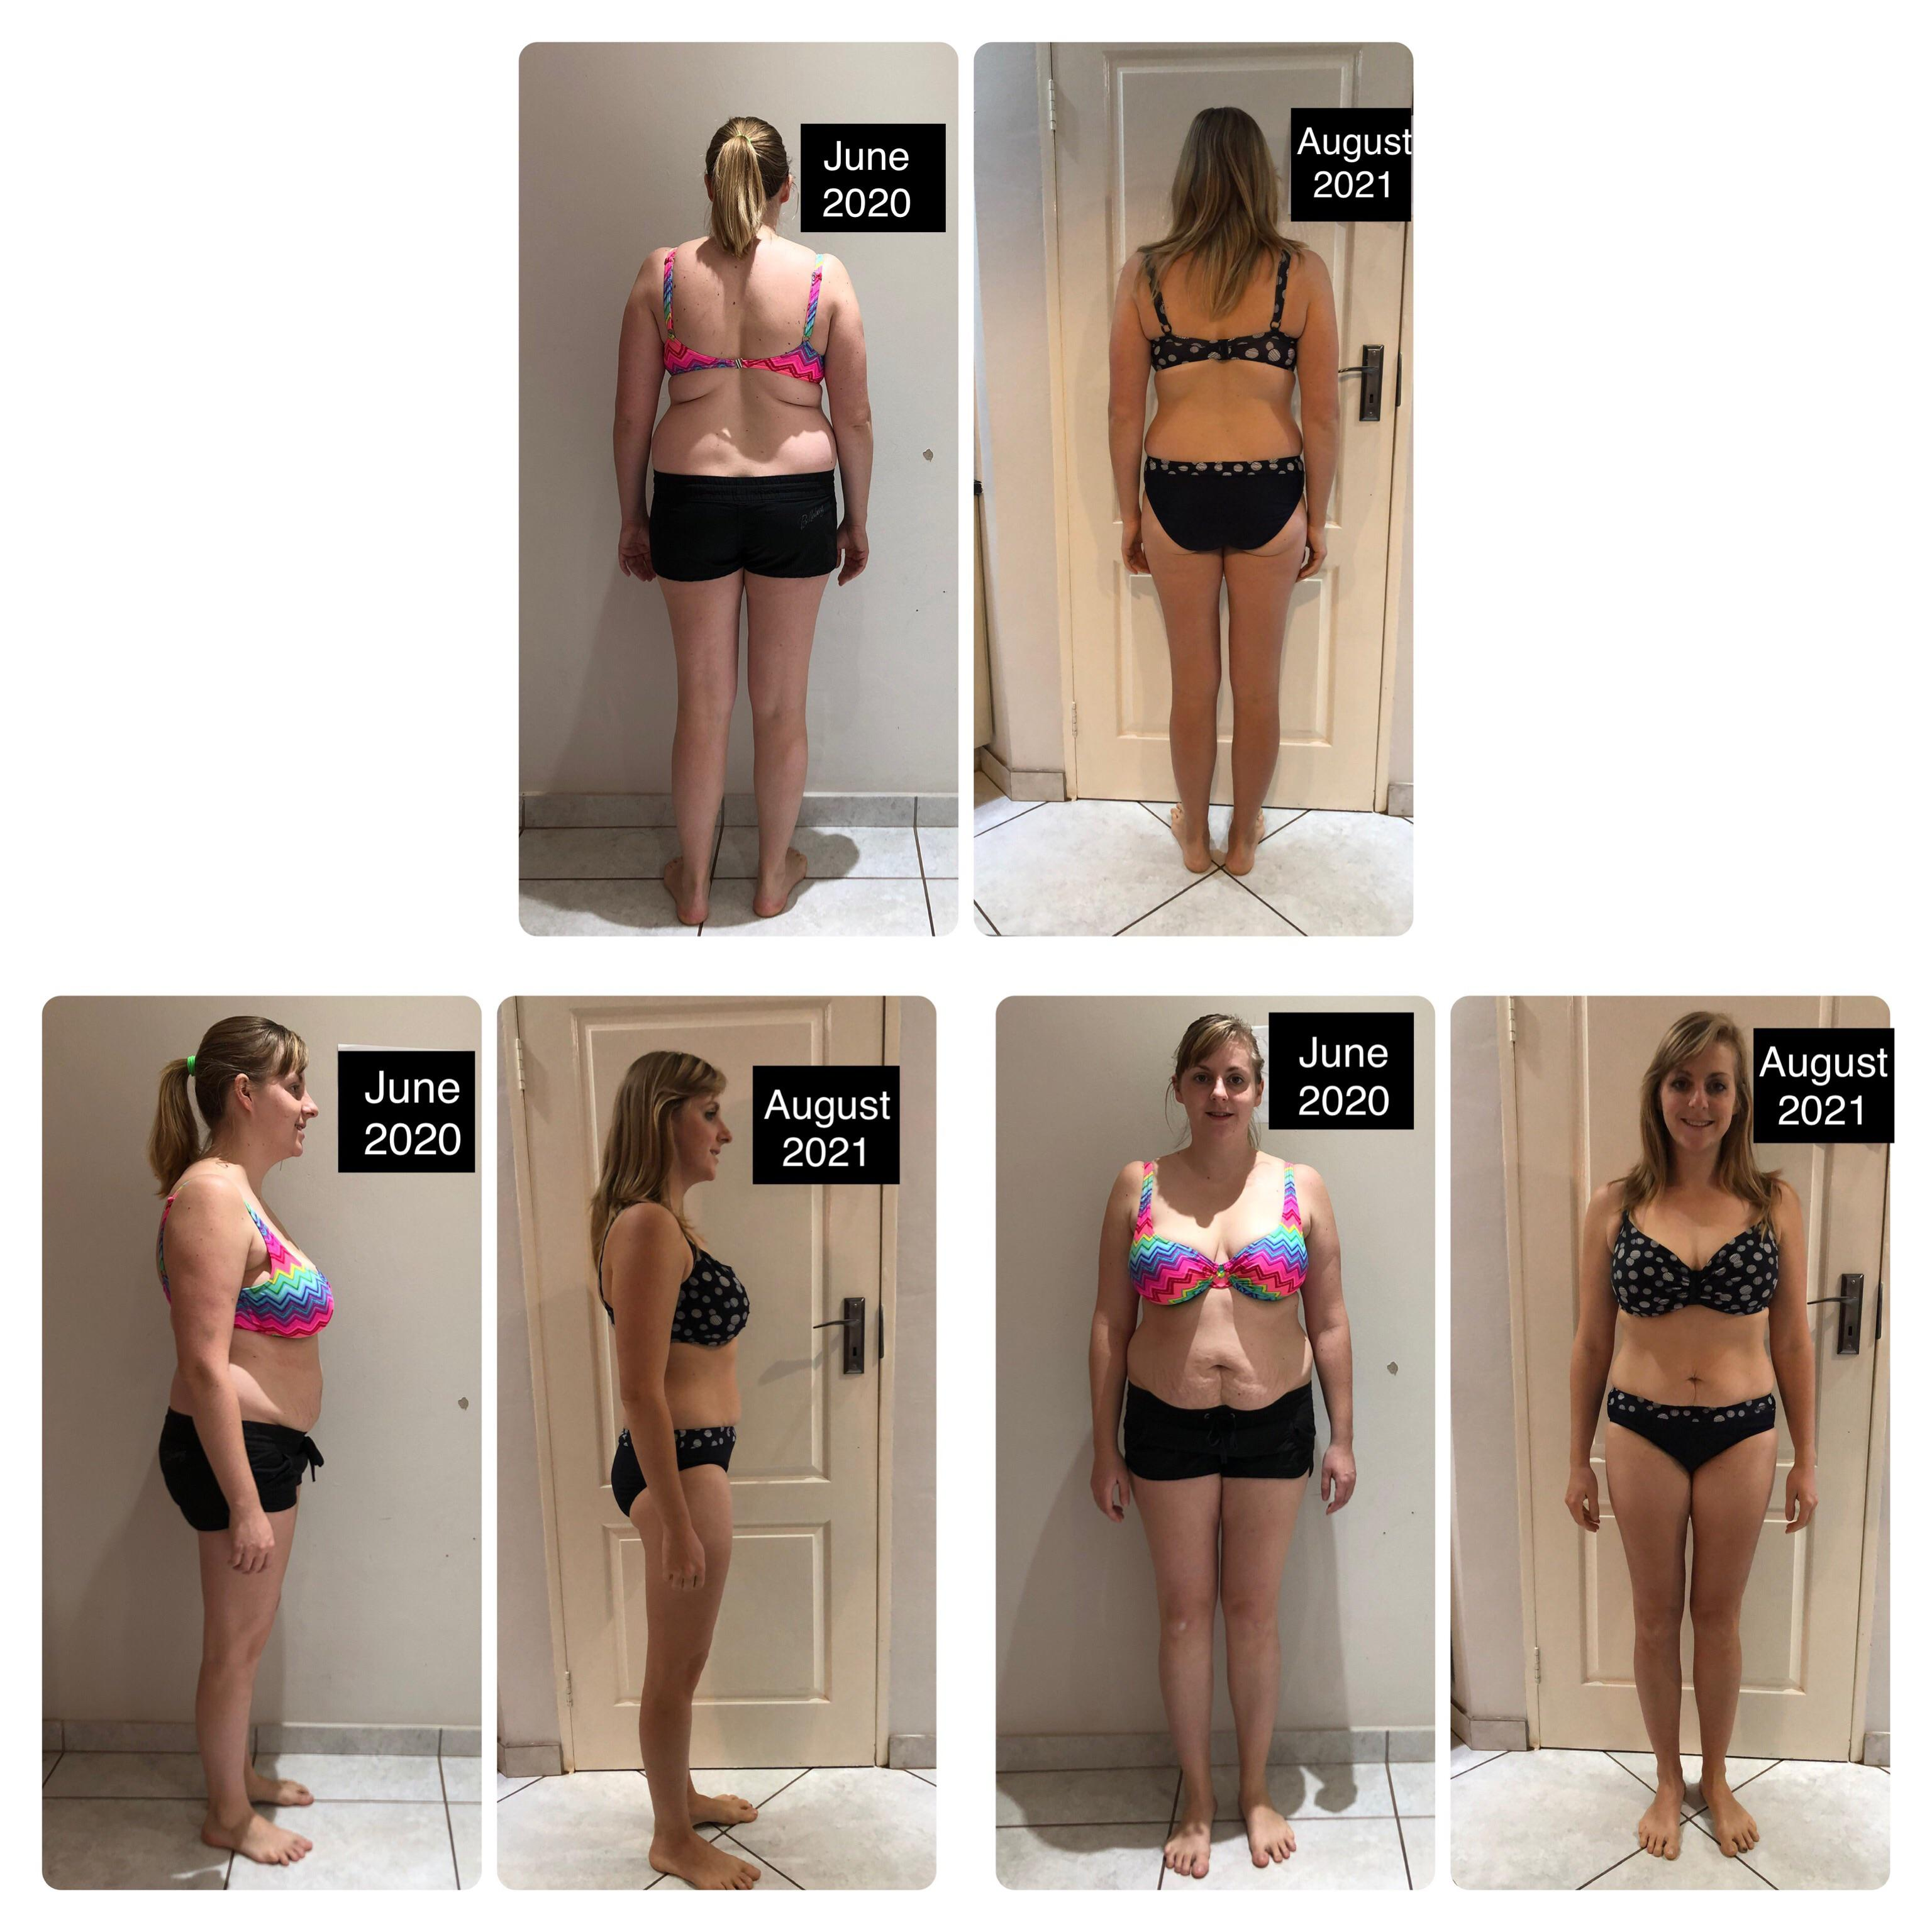 5 foot 7 Female 30 lbs Weight Loss Before and After 175 lbs to 145 lbs